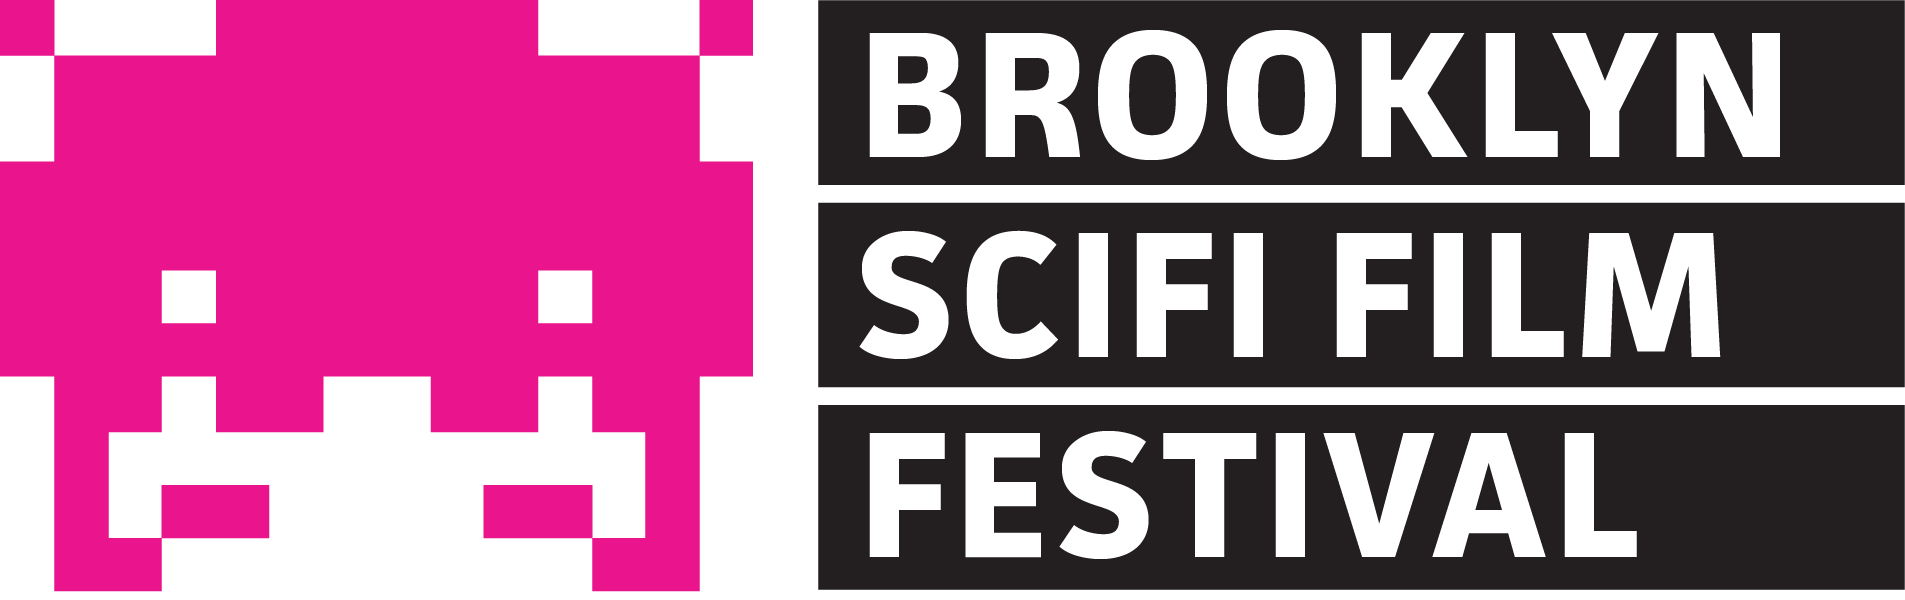 Brooklyn SciFi Film Festival 2020